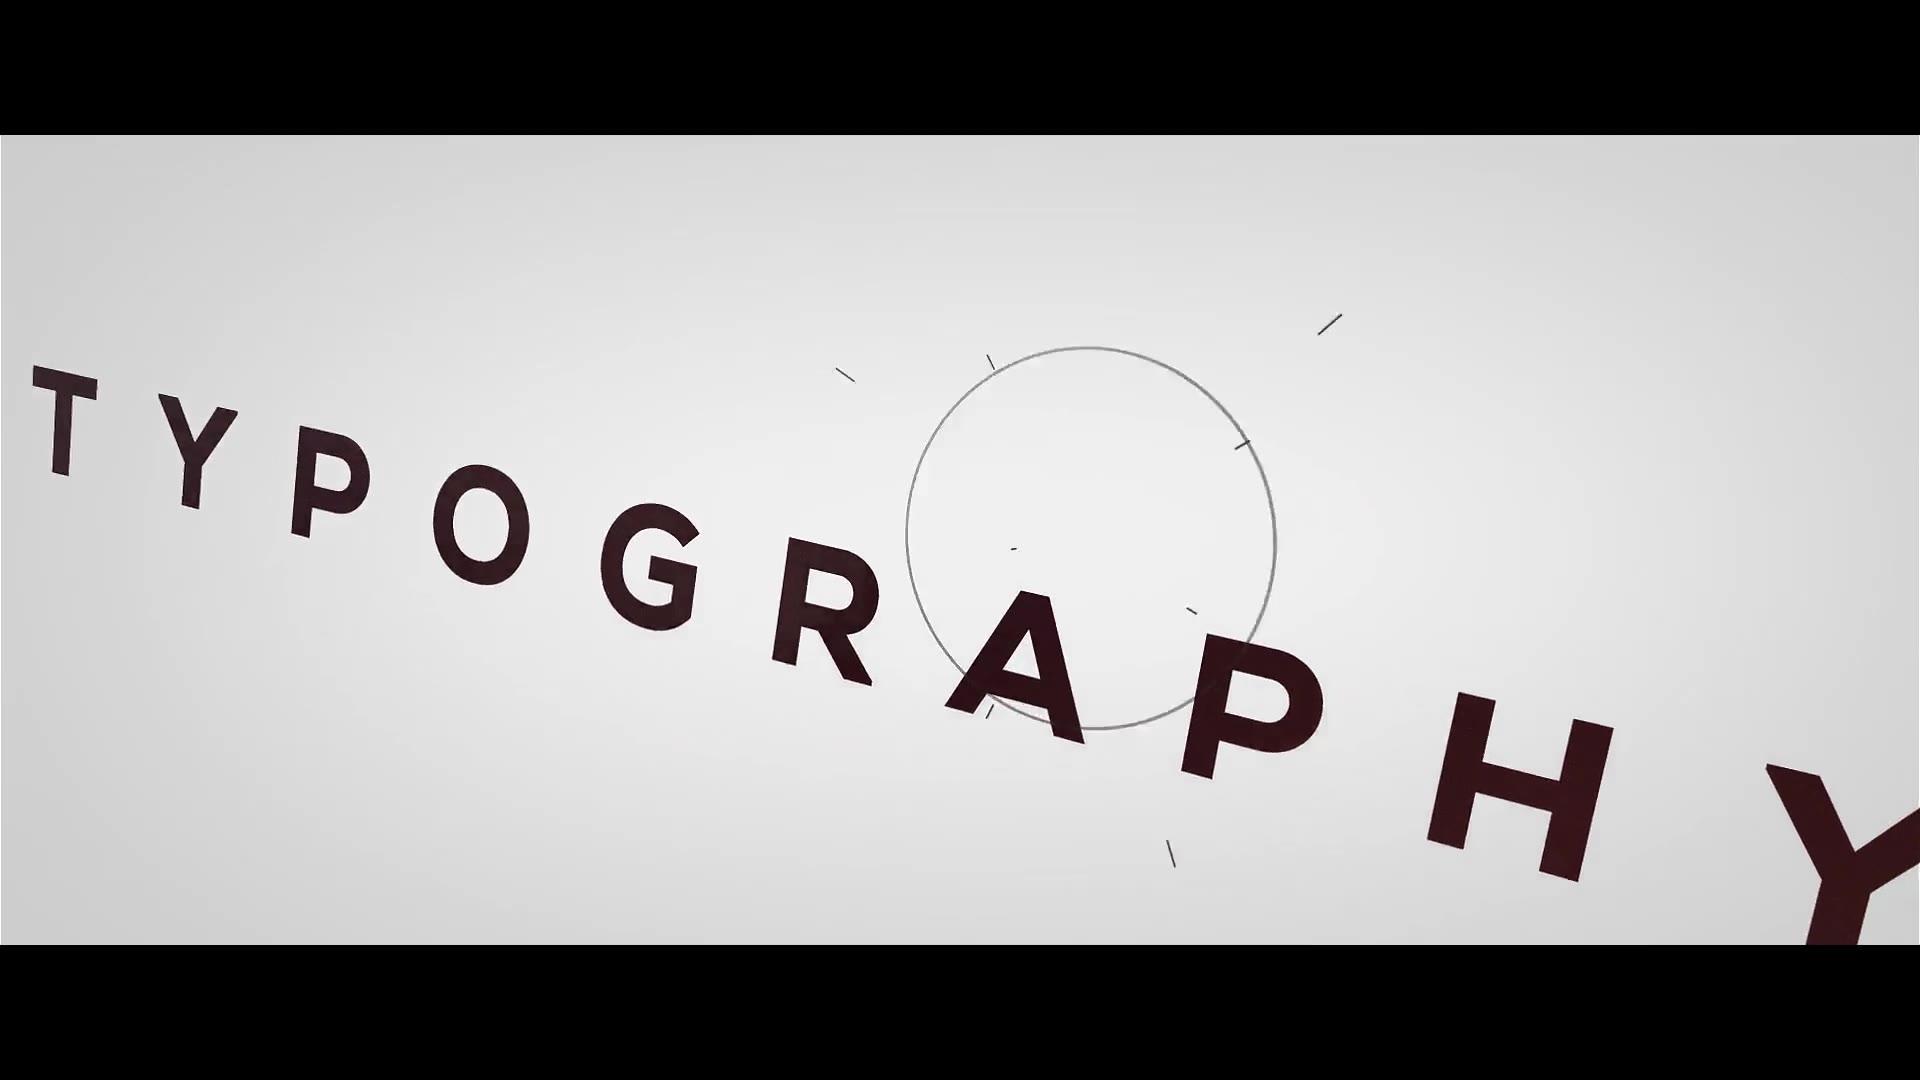 3D Rhythm Typography Intro - Download Videohive 20487522